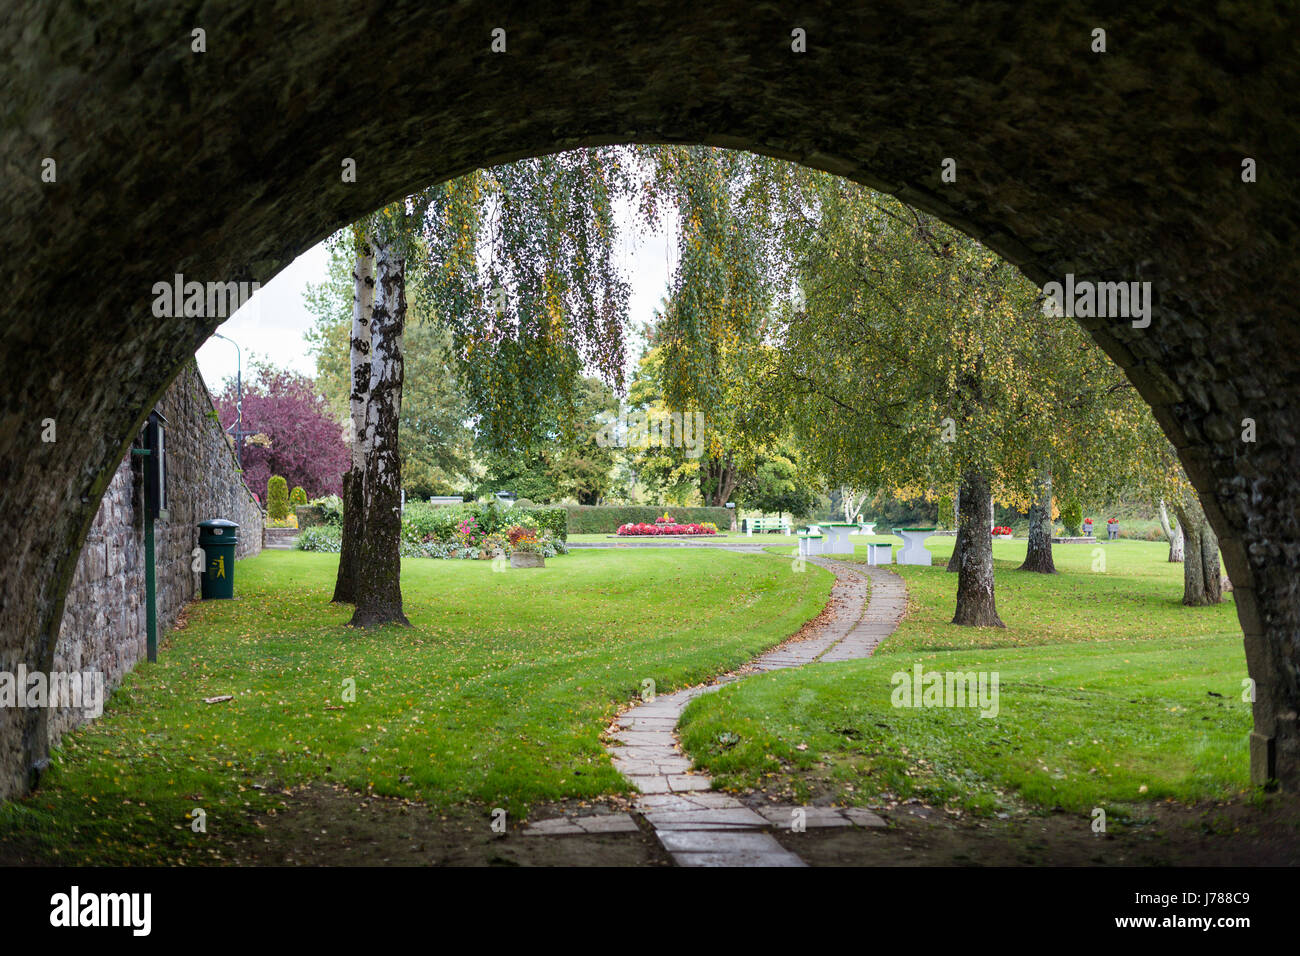 Walking through The historic and beautiful Ten Arch stone Bridge over River Nore in Inistioge, Kilkenny, Ireland - Stock Image